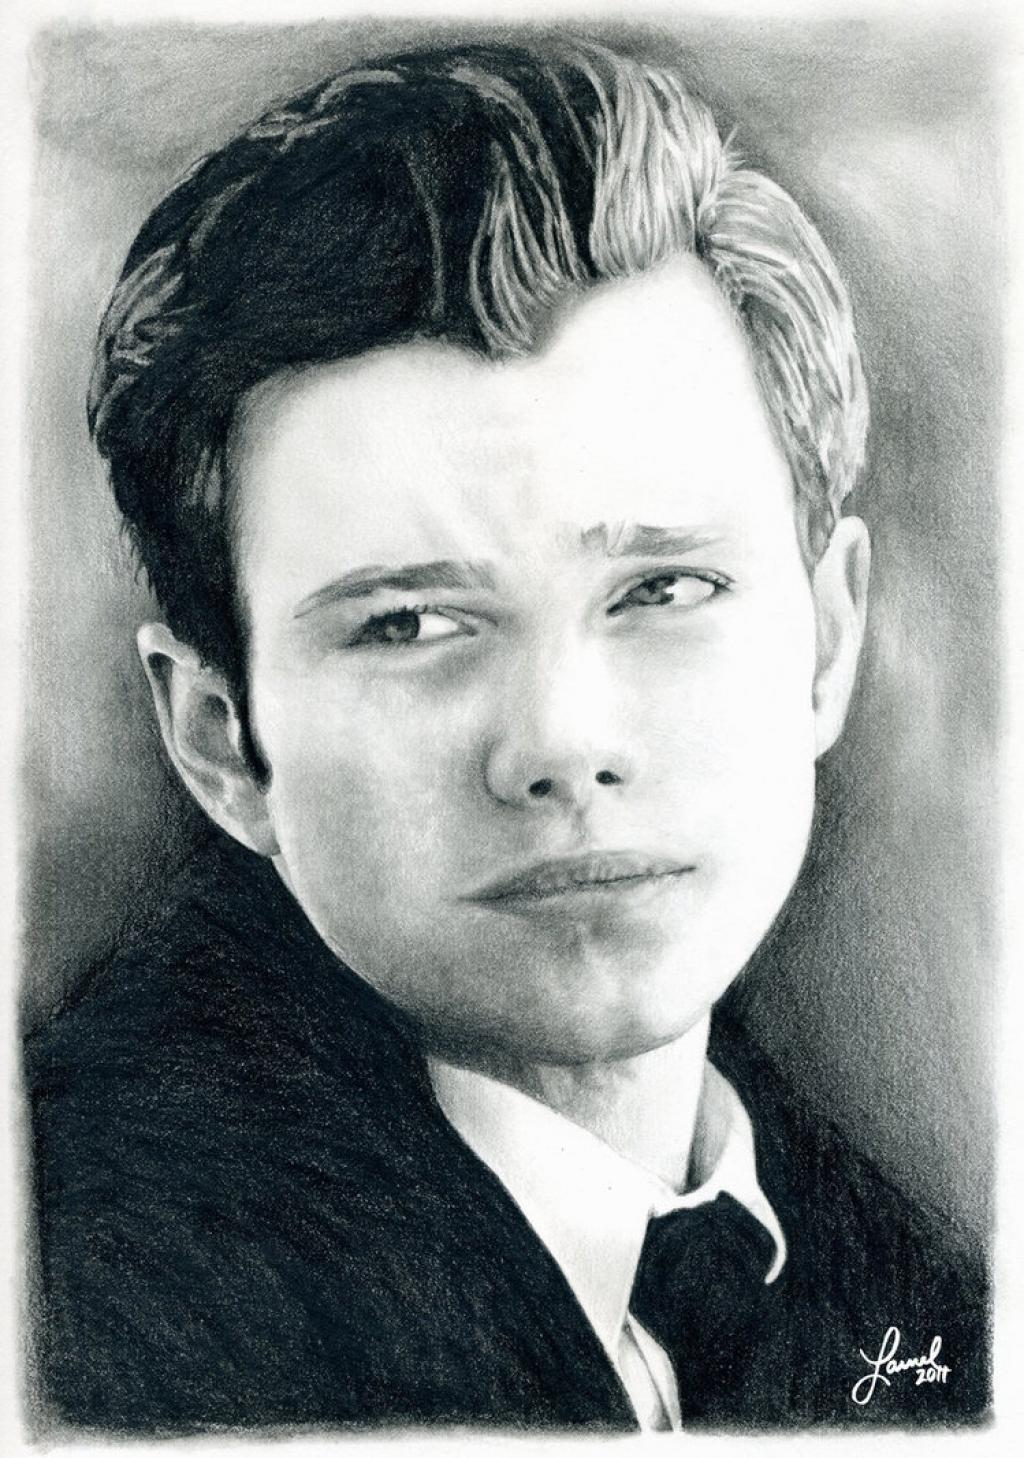 Chris Drawings & paintings Fanarts We_got_each_other...-d3youso-31f61d1